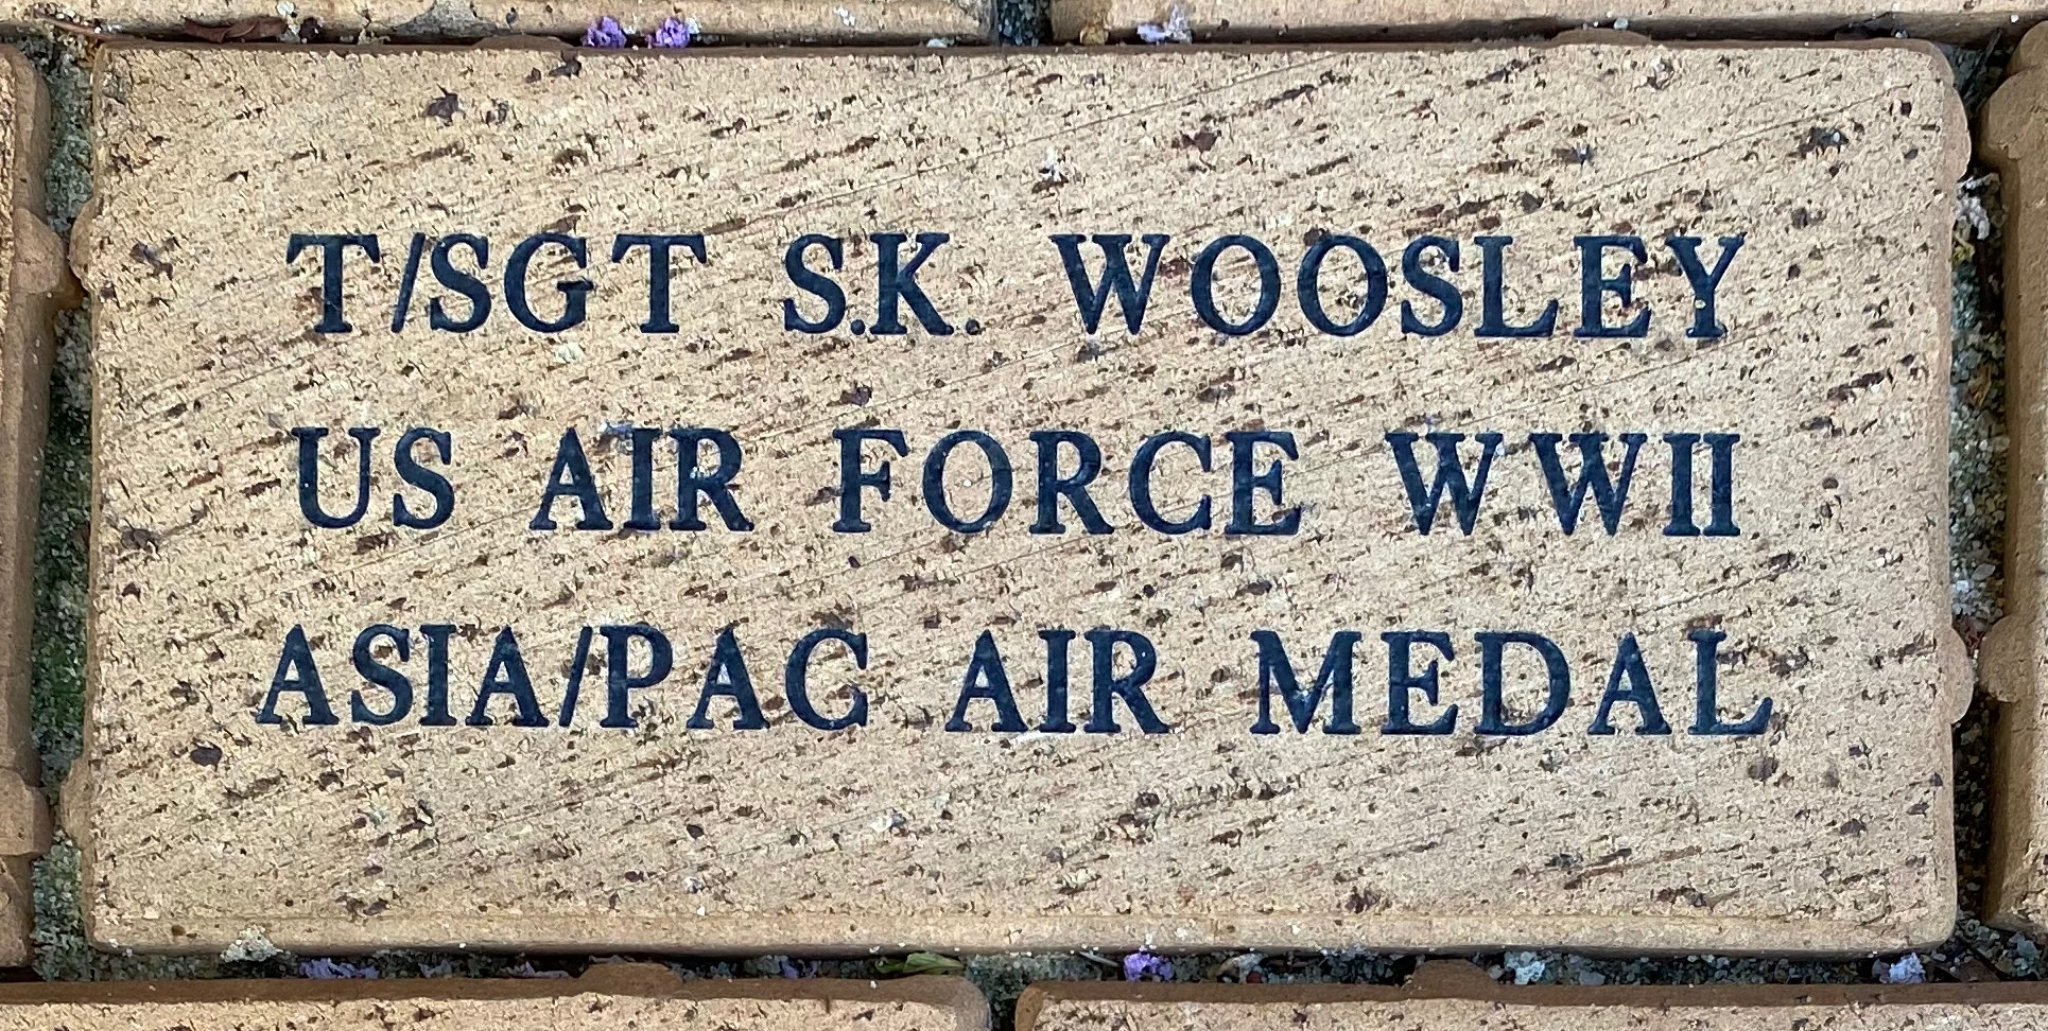 T/SGT S.K. WOOSLEY US AIR FORCE WWII ASIA/PAC AIR MEDAL